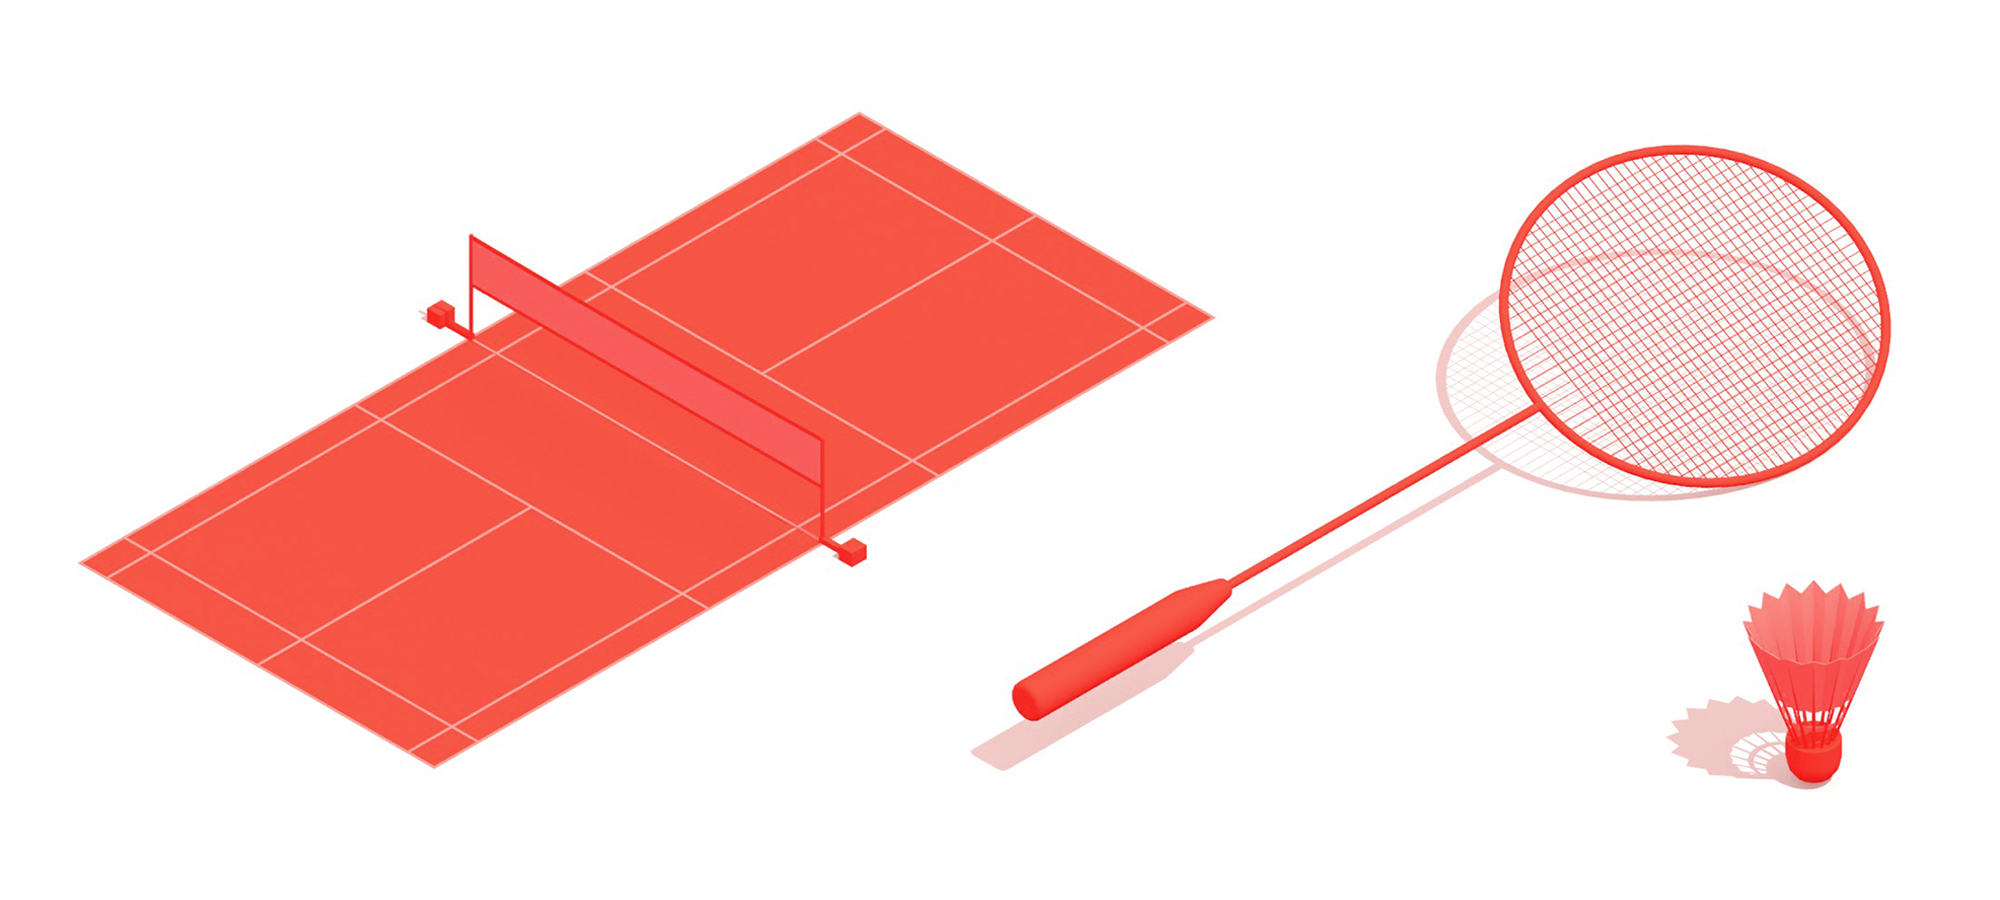 Collection of the components of Badminton in 3D including the badminton court, badminton racket, and badminton shuttlecock